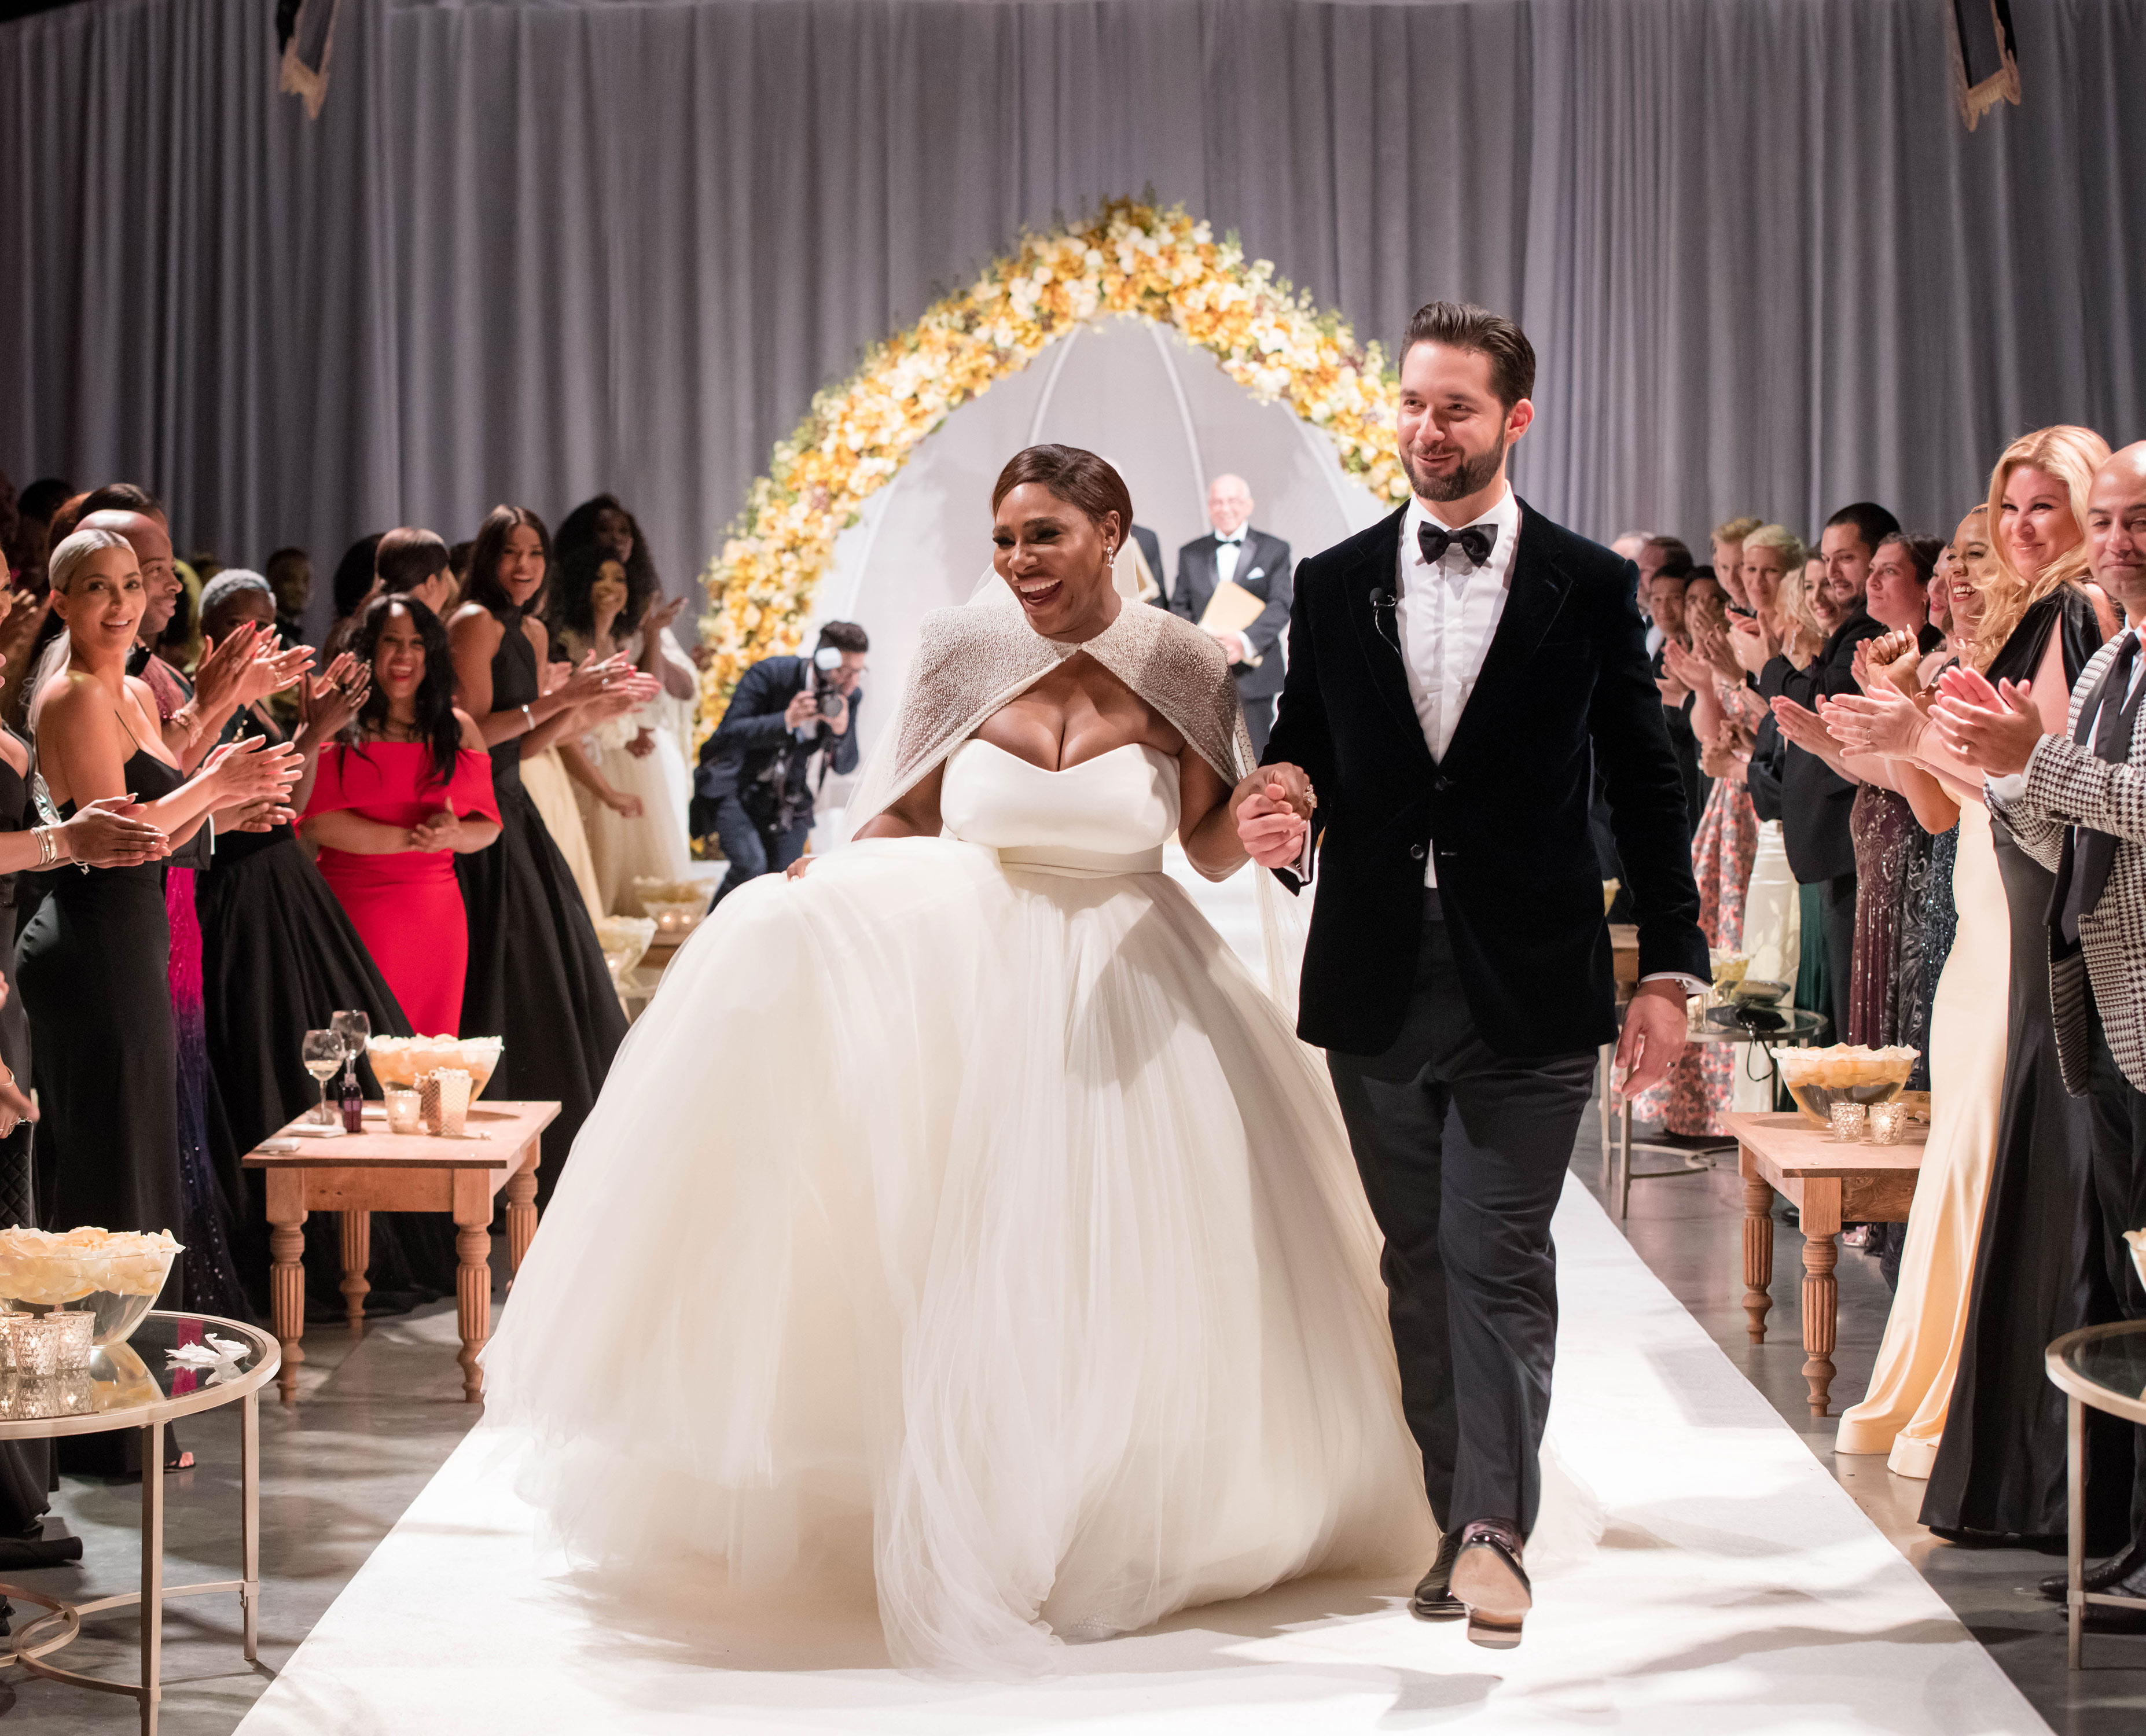 Serena Williams and Alexis Ohanian Wedding Ceremony